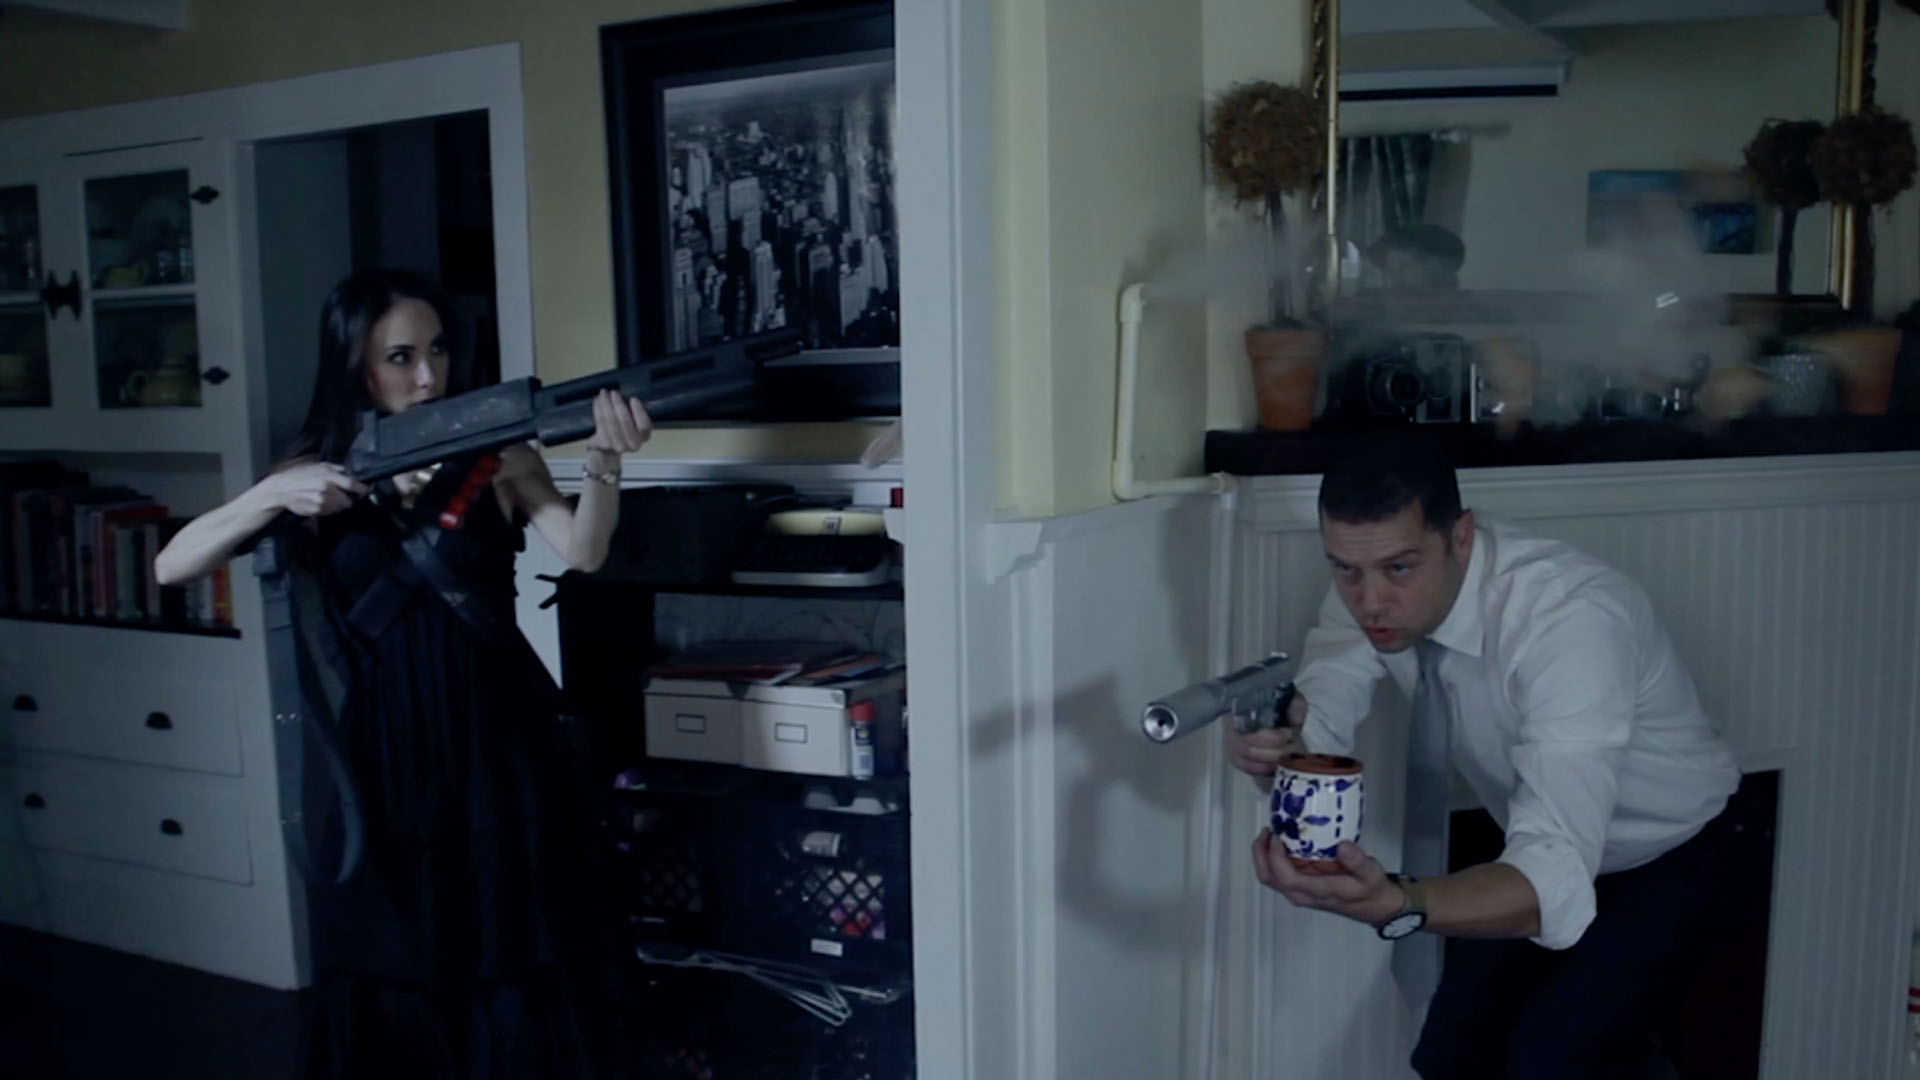 Mr And Mrs Smith Kitchen brangelina fight as 'mr. and mrs. smith' with a cappella gunfights and  cardboard props